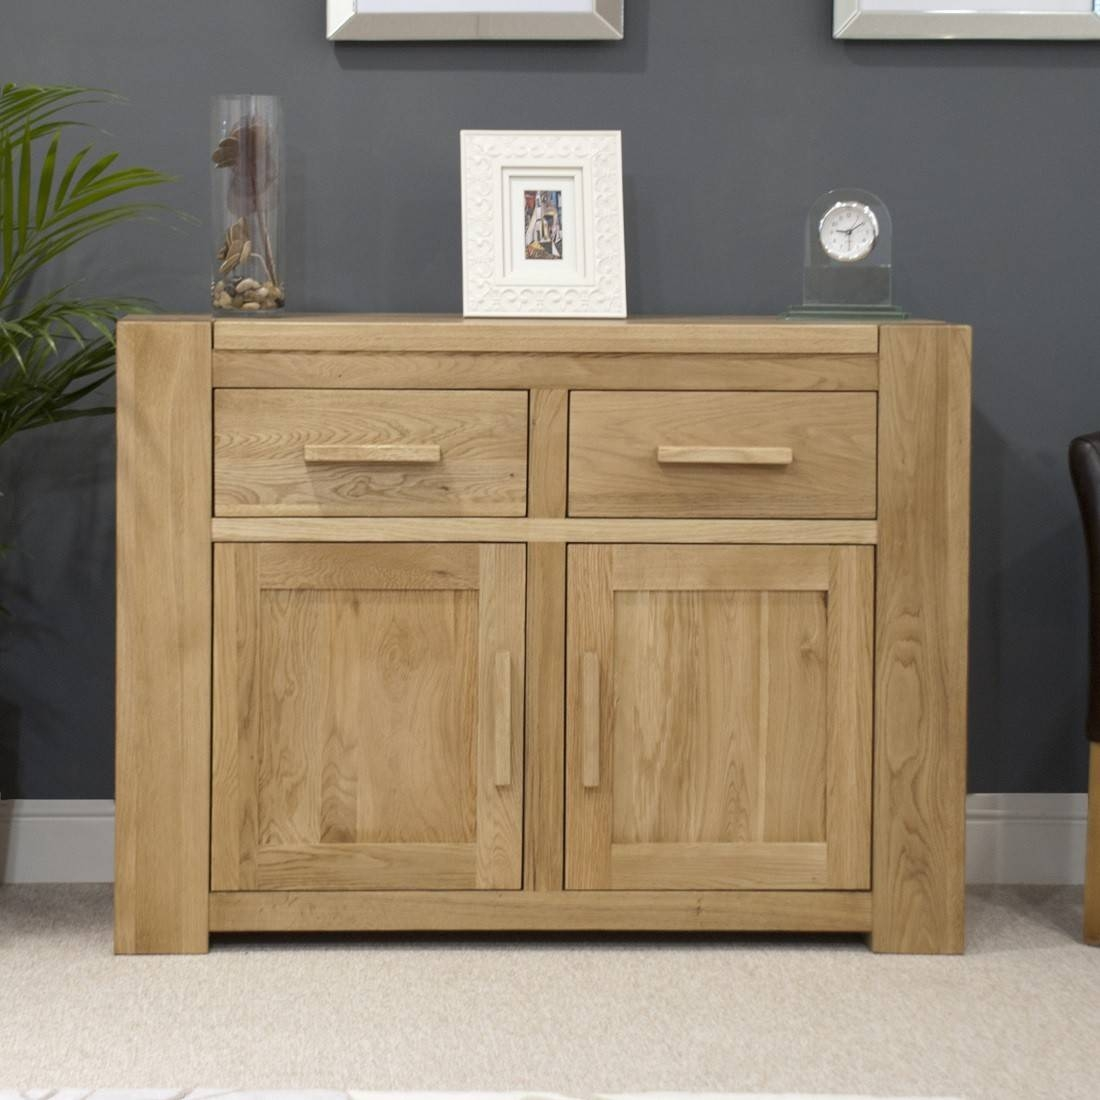 Oak Sideboards | Oak Furniture Uk Pertaining To Real Wood Sideboards (#9 of 15)